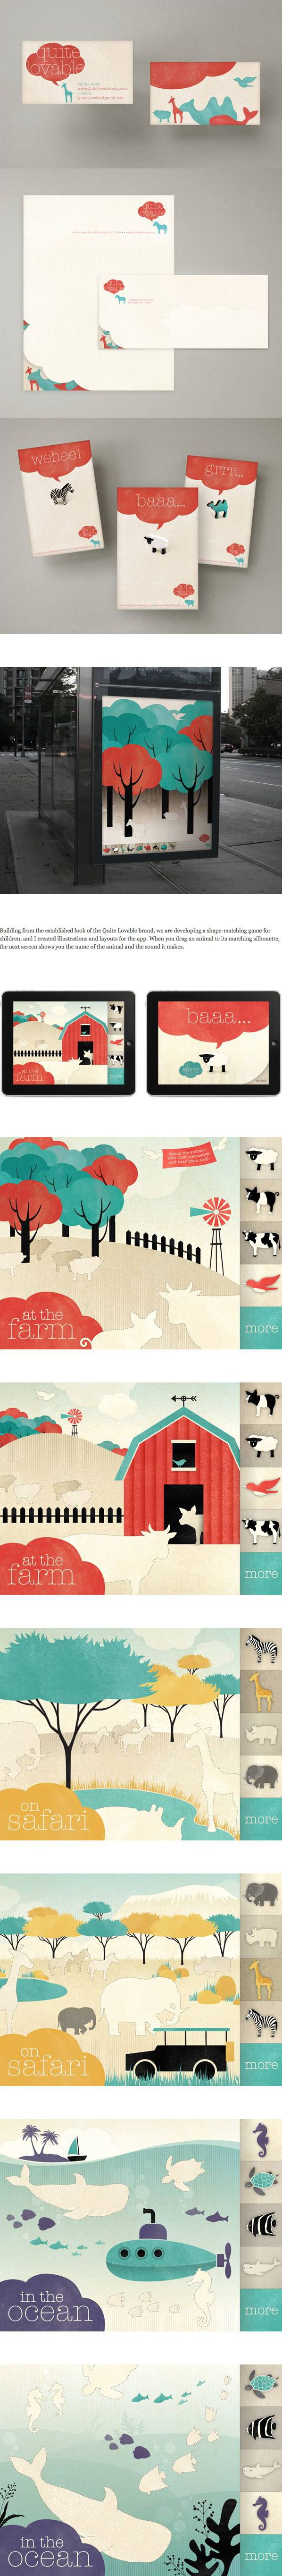 Absolutely loving this fun and colorful simple illustration and all the many applications.  At the farm. #identity #packaging #branding PD